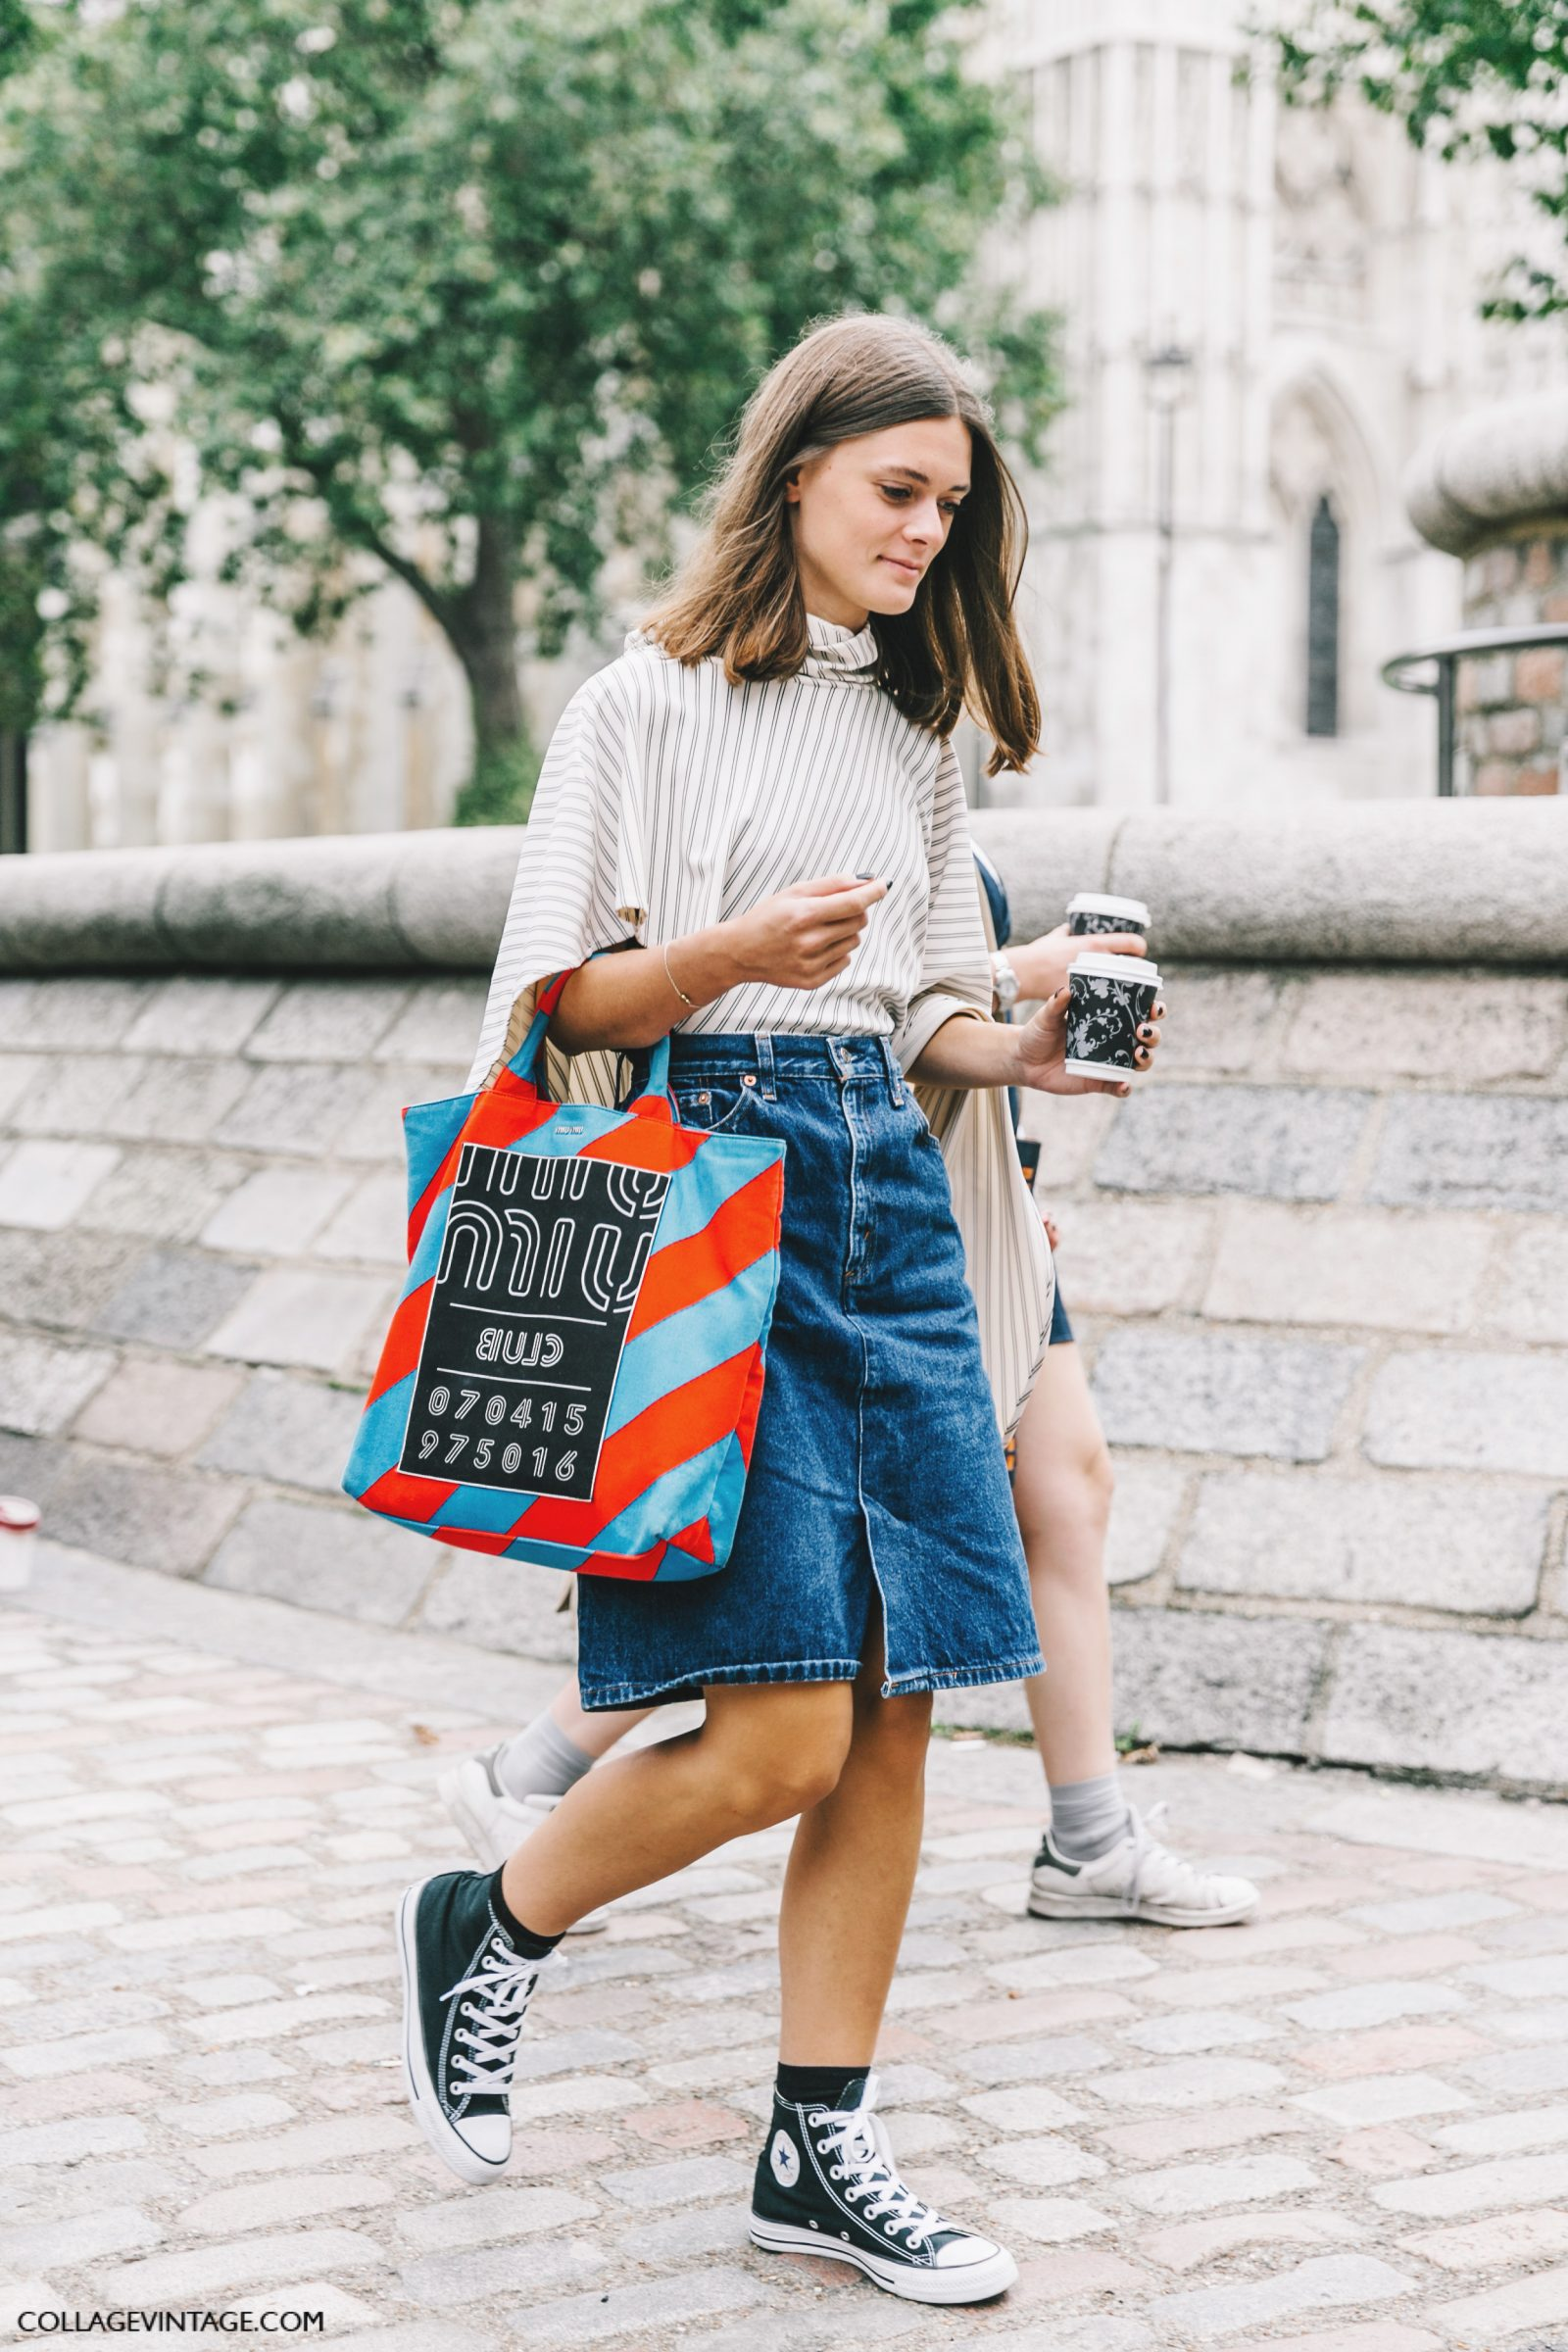 lfw-london_fashion_week_ss17-street_style-outfits-collage_vintage-vintage-topshop_unique-anya-mulberry-preen-50